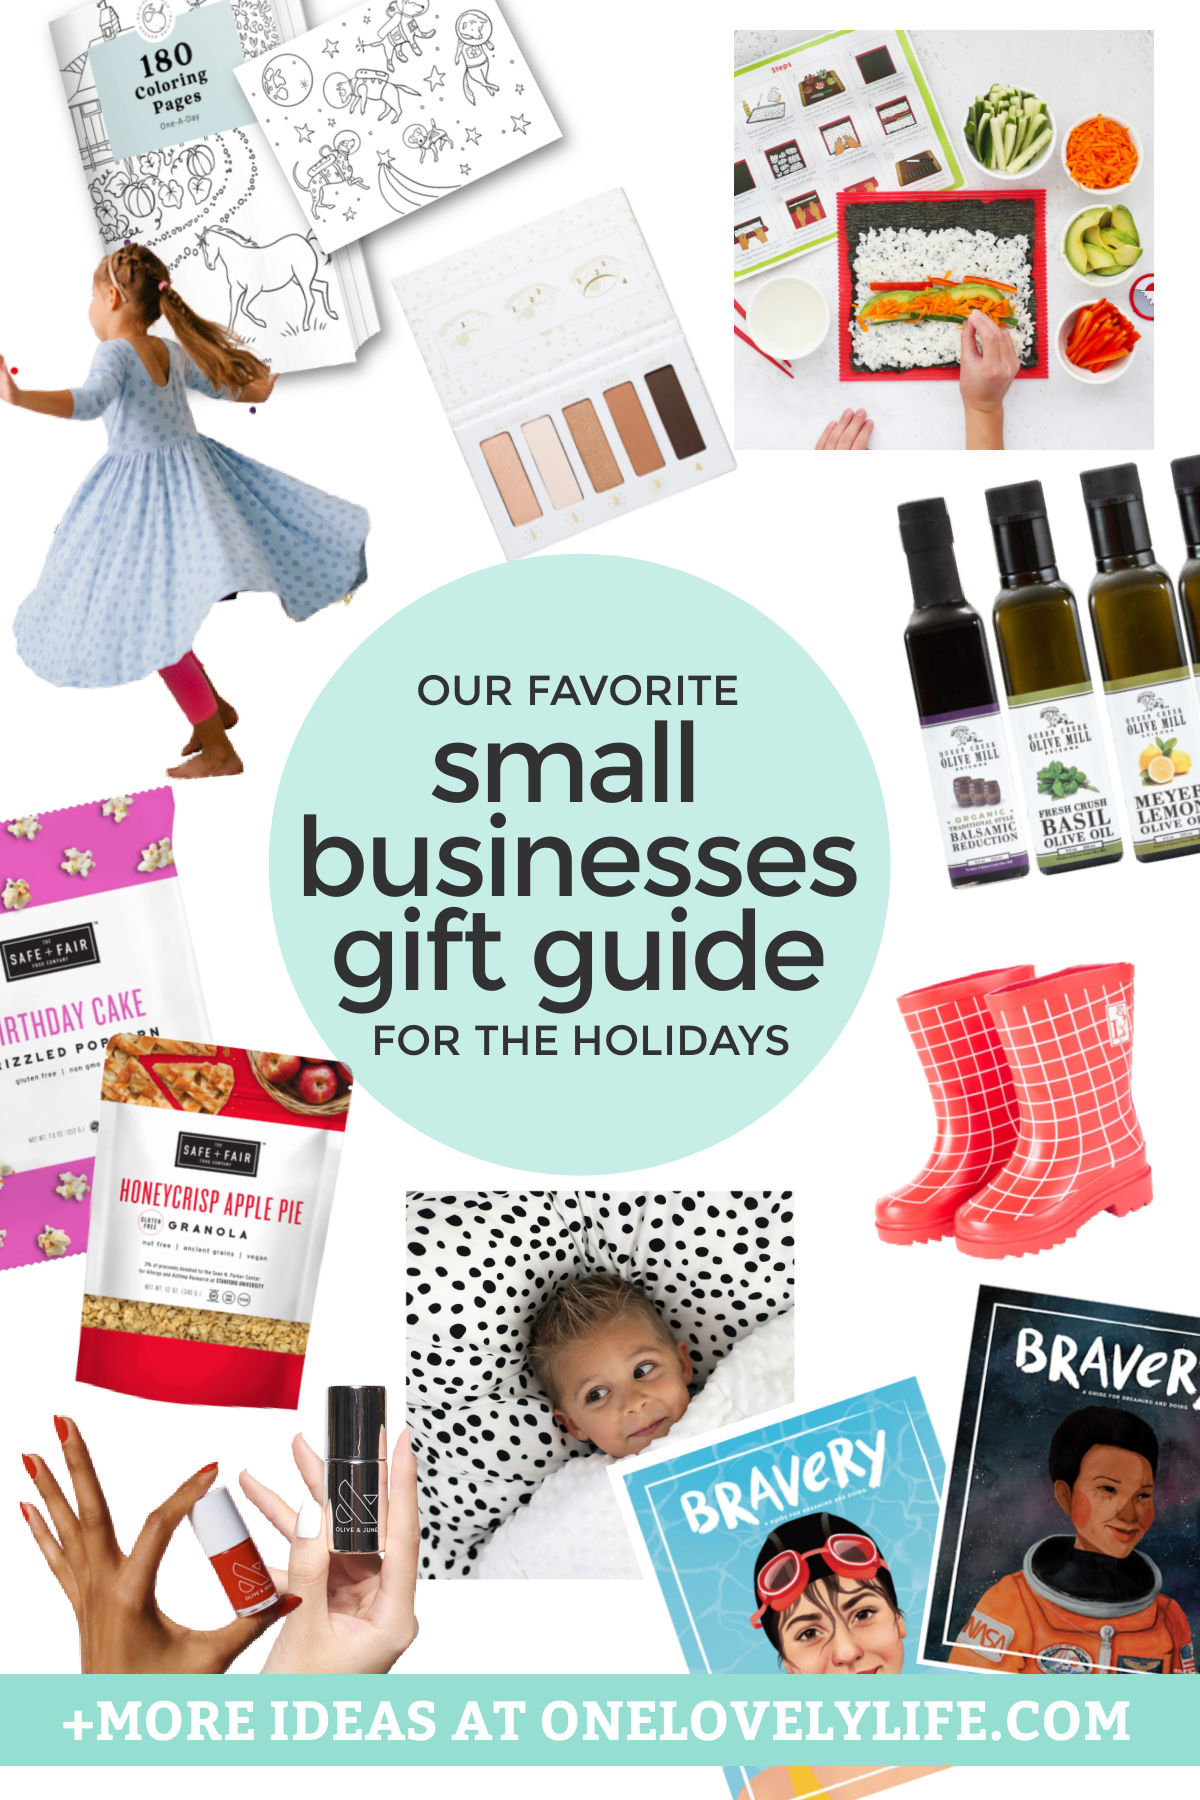 The Small Businesses Holiday Gift Guide - Shop small and support small businesses this holiday season with ideas for everyone on your list! Small Business Gift ideas for in-laws // Little Girl Gift Ideas // Neighbor Gift Ideas // Little Boy Gift ideas // Teacher Gift Ideas // Gift Ideas for Parents #giftguide #gifting #holiday